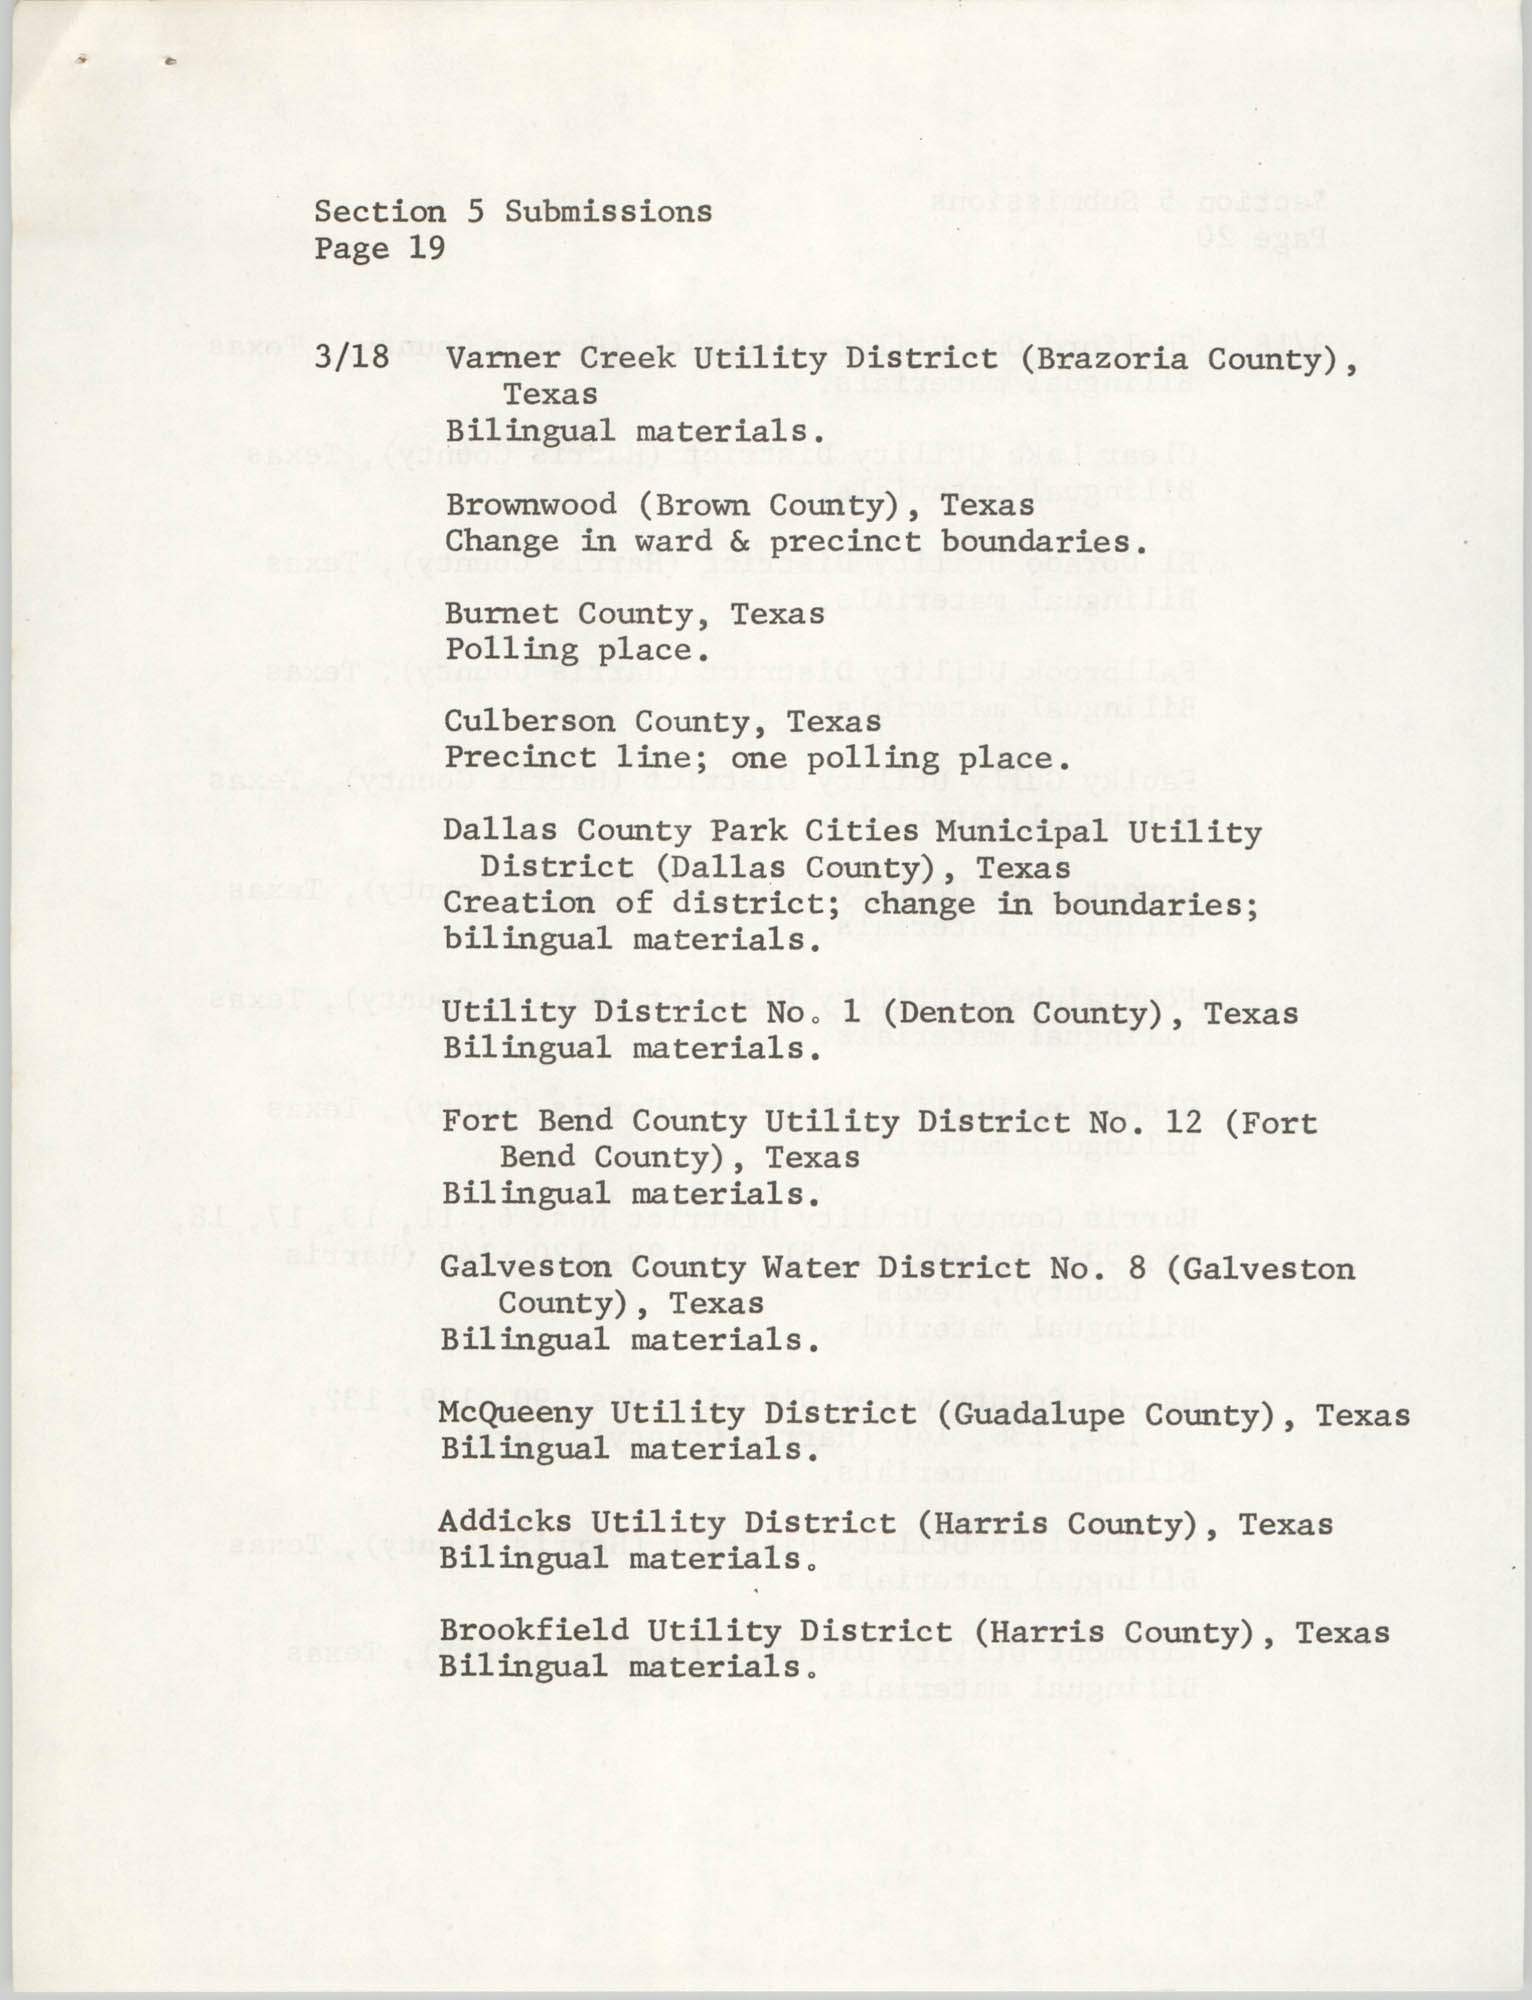 United States Department of Justice Notice, March 26, 1976, Page 19